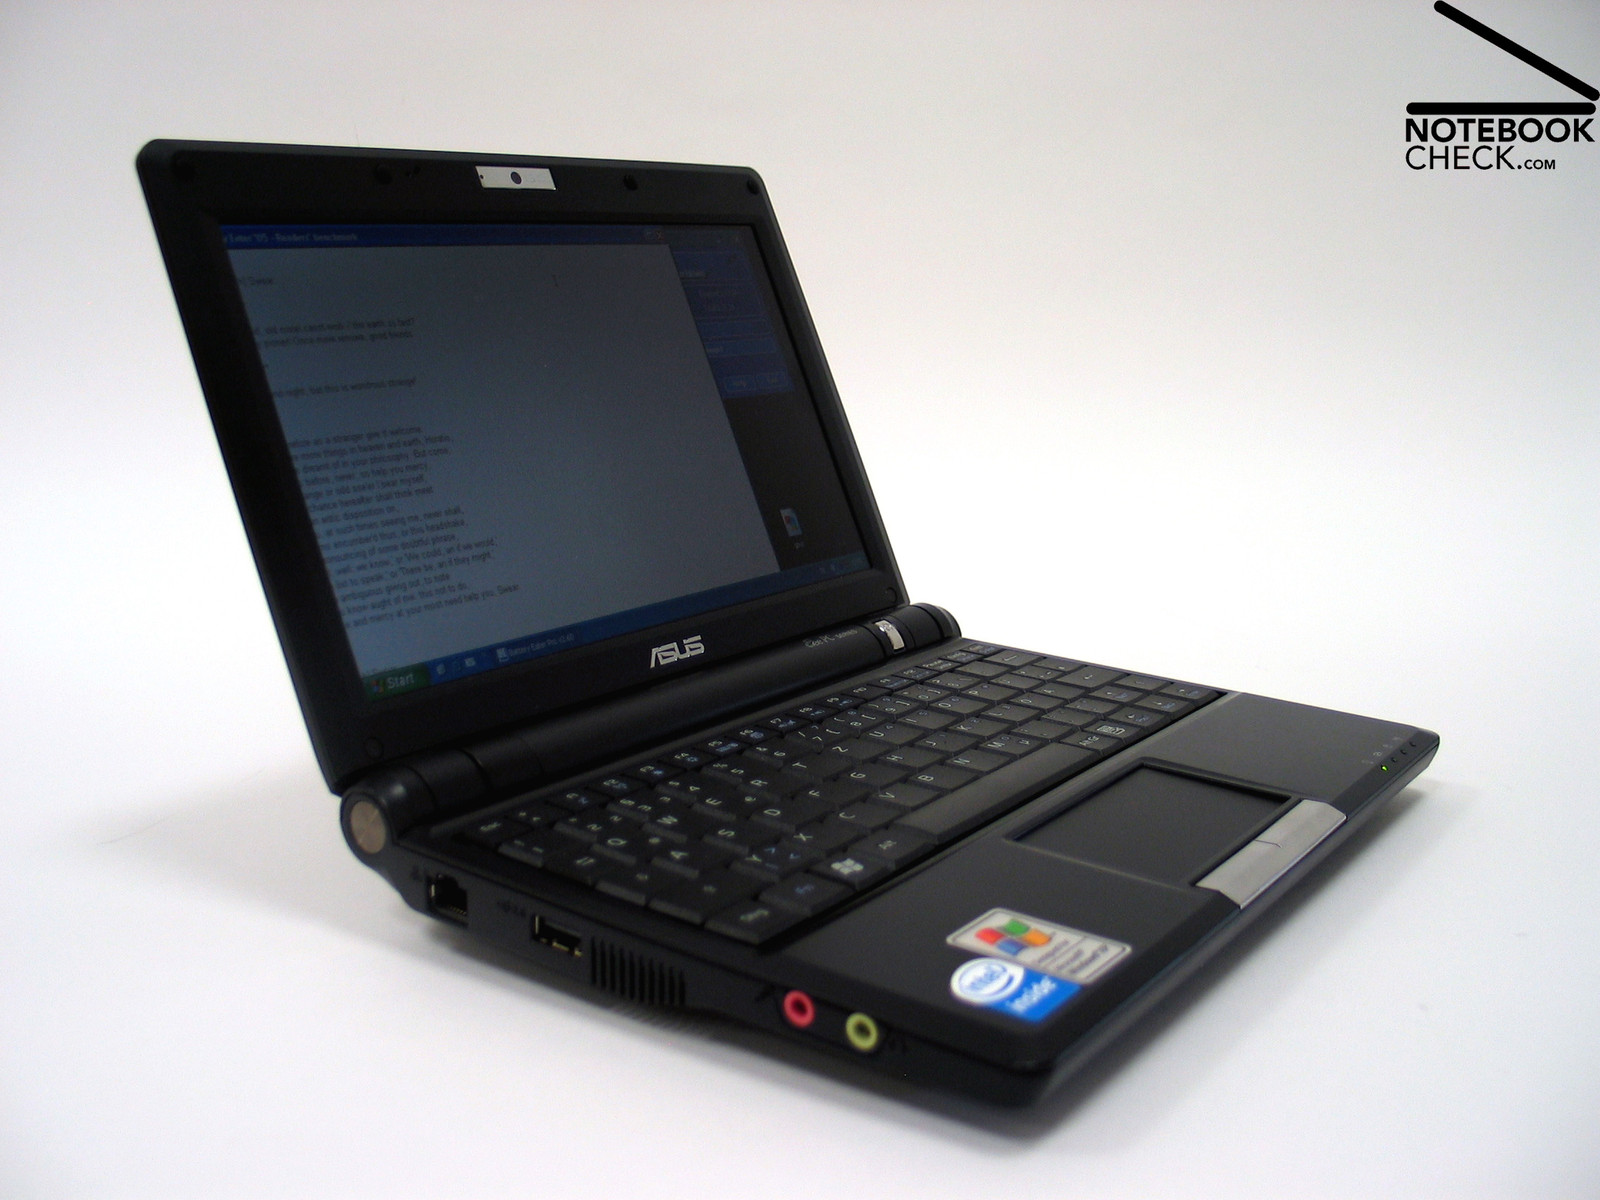 Drivers Asus Eee PC 900HA Netbook LAN